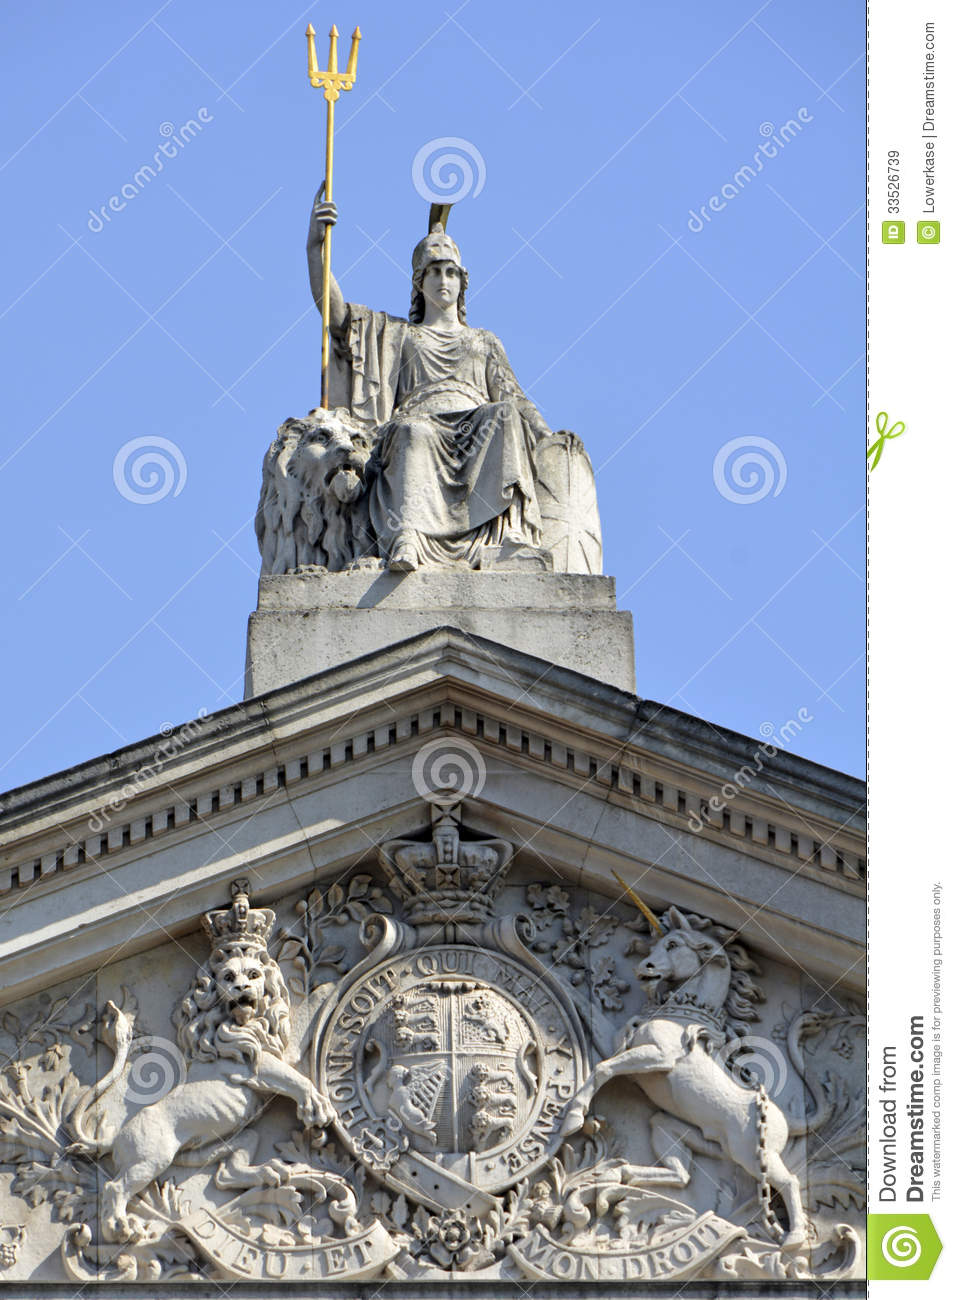 Britannia Statue And Trident With Coat Of Arms Below